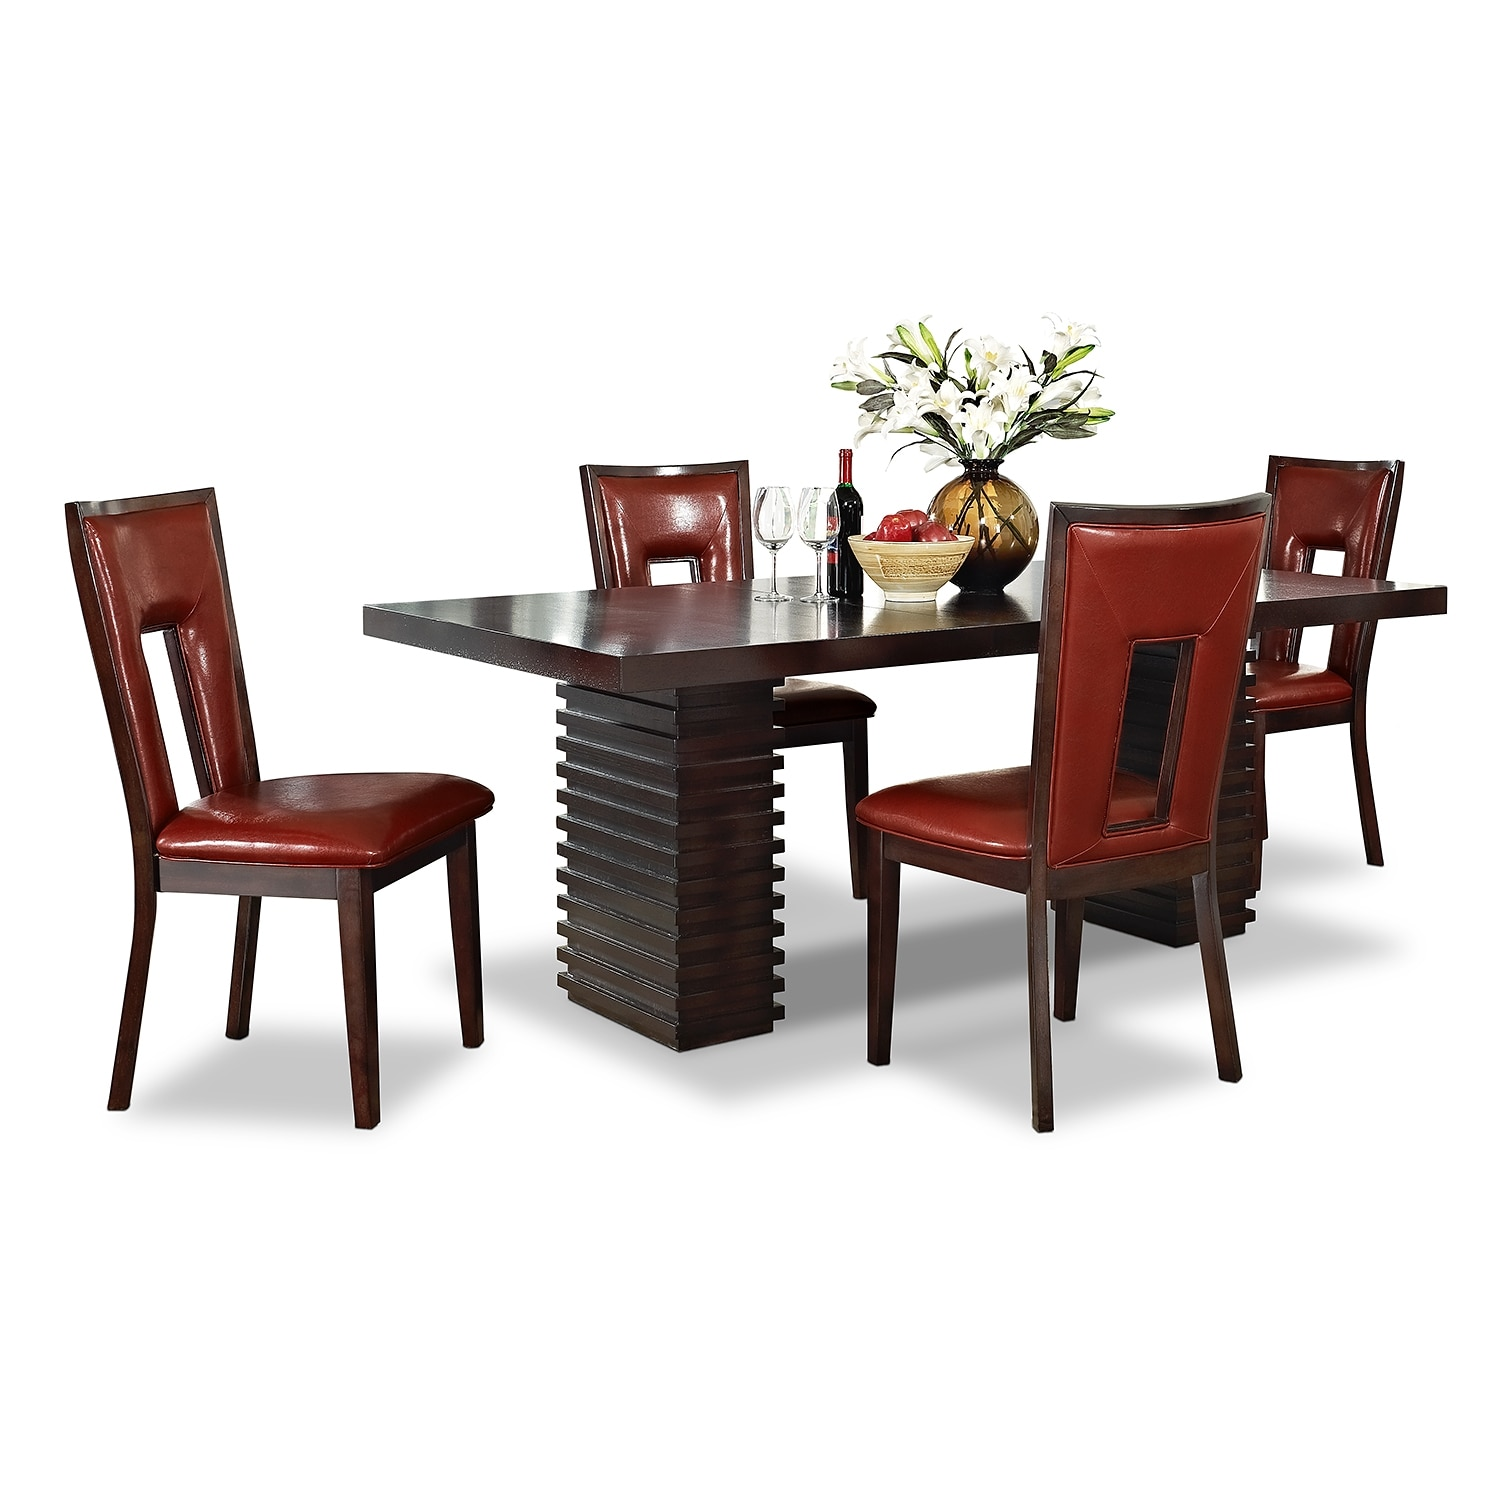 Paragon Madera 5 Pc. Dinette